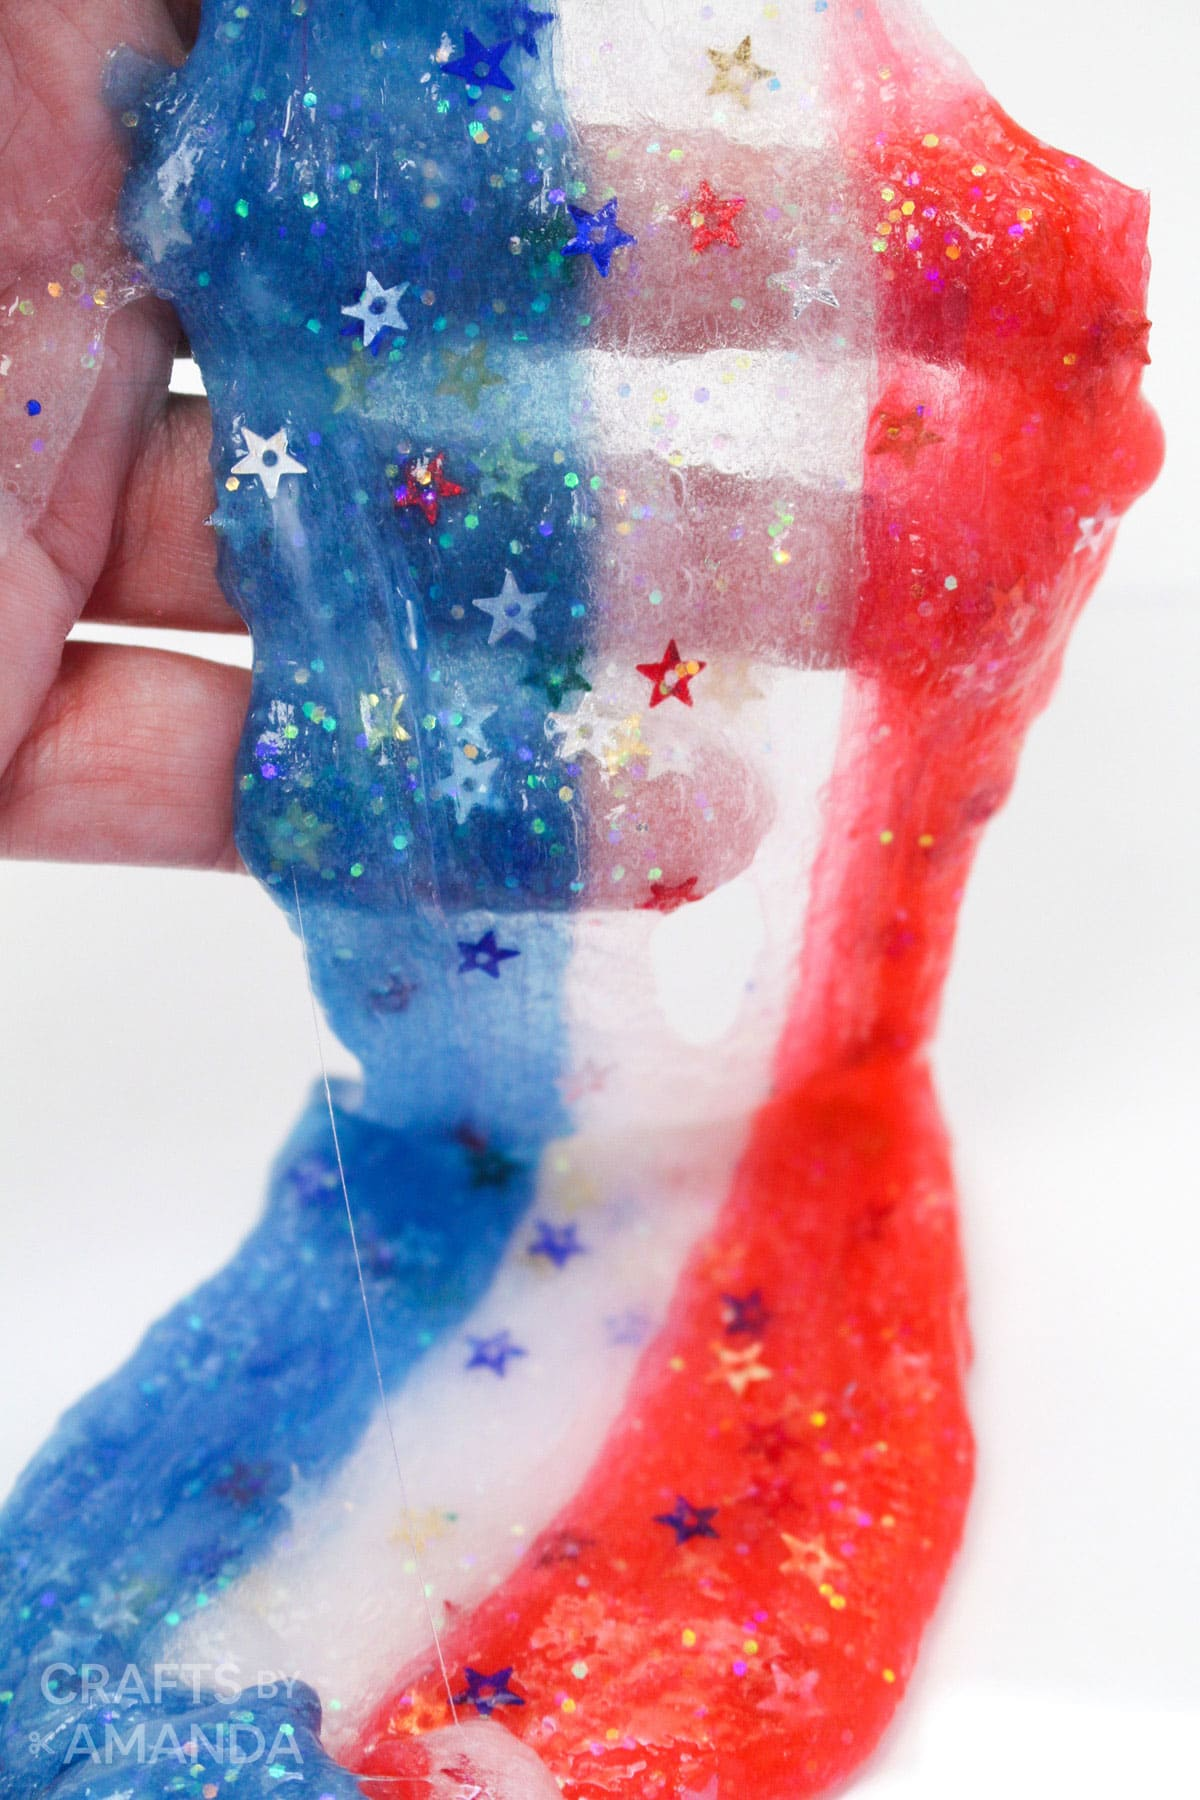 hand holding red, white, and blue slime